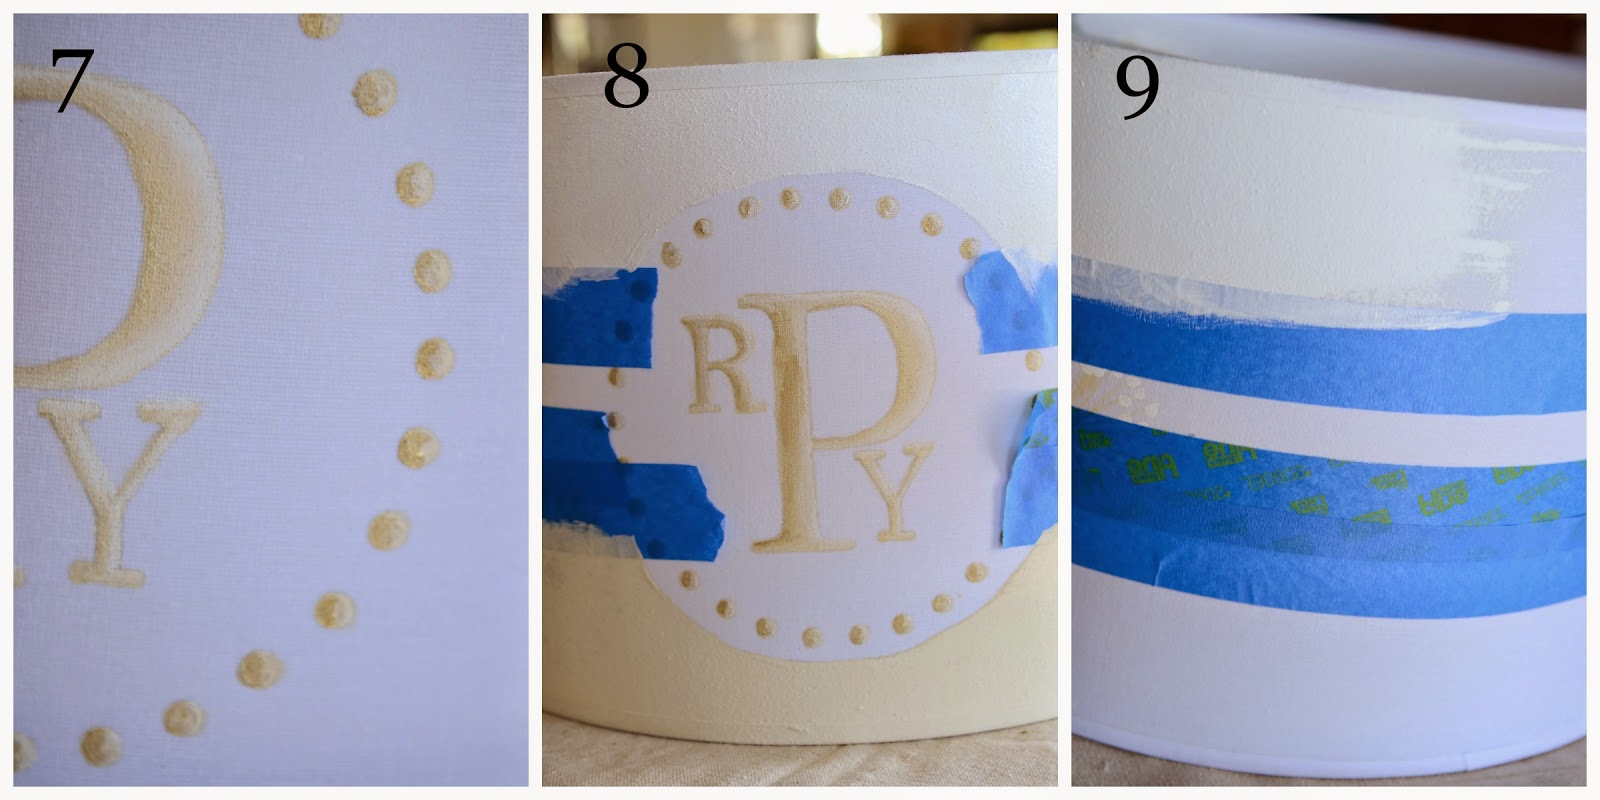 How to paint a monogrammed lampshade stonegable 7 dip a new eraser side of a pencil into the off white paint and make dots all around when dry highlight the right side of the dots with white paint and mozeypictures Images